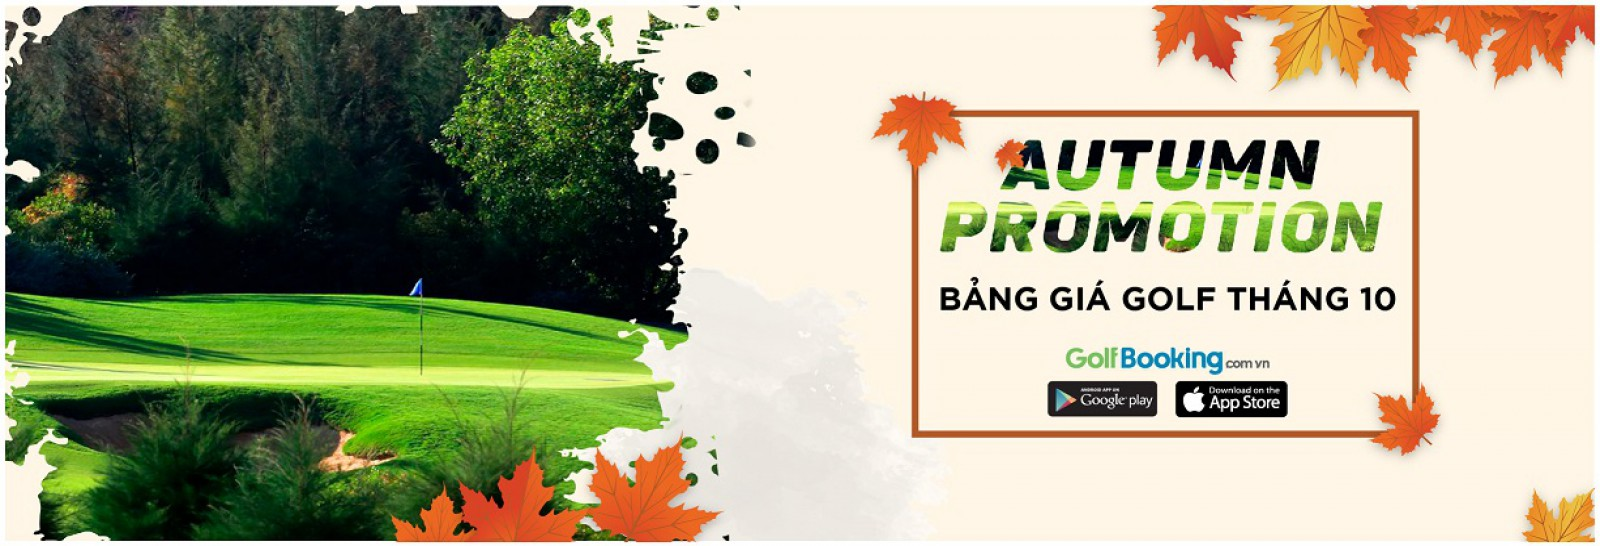 Oct 2020 Golf Booking Quotation